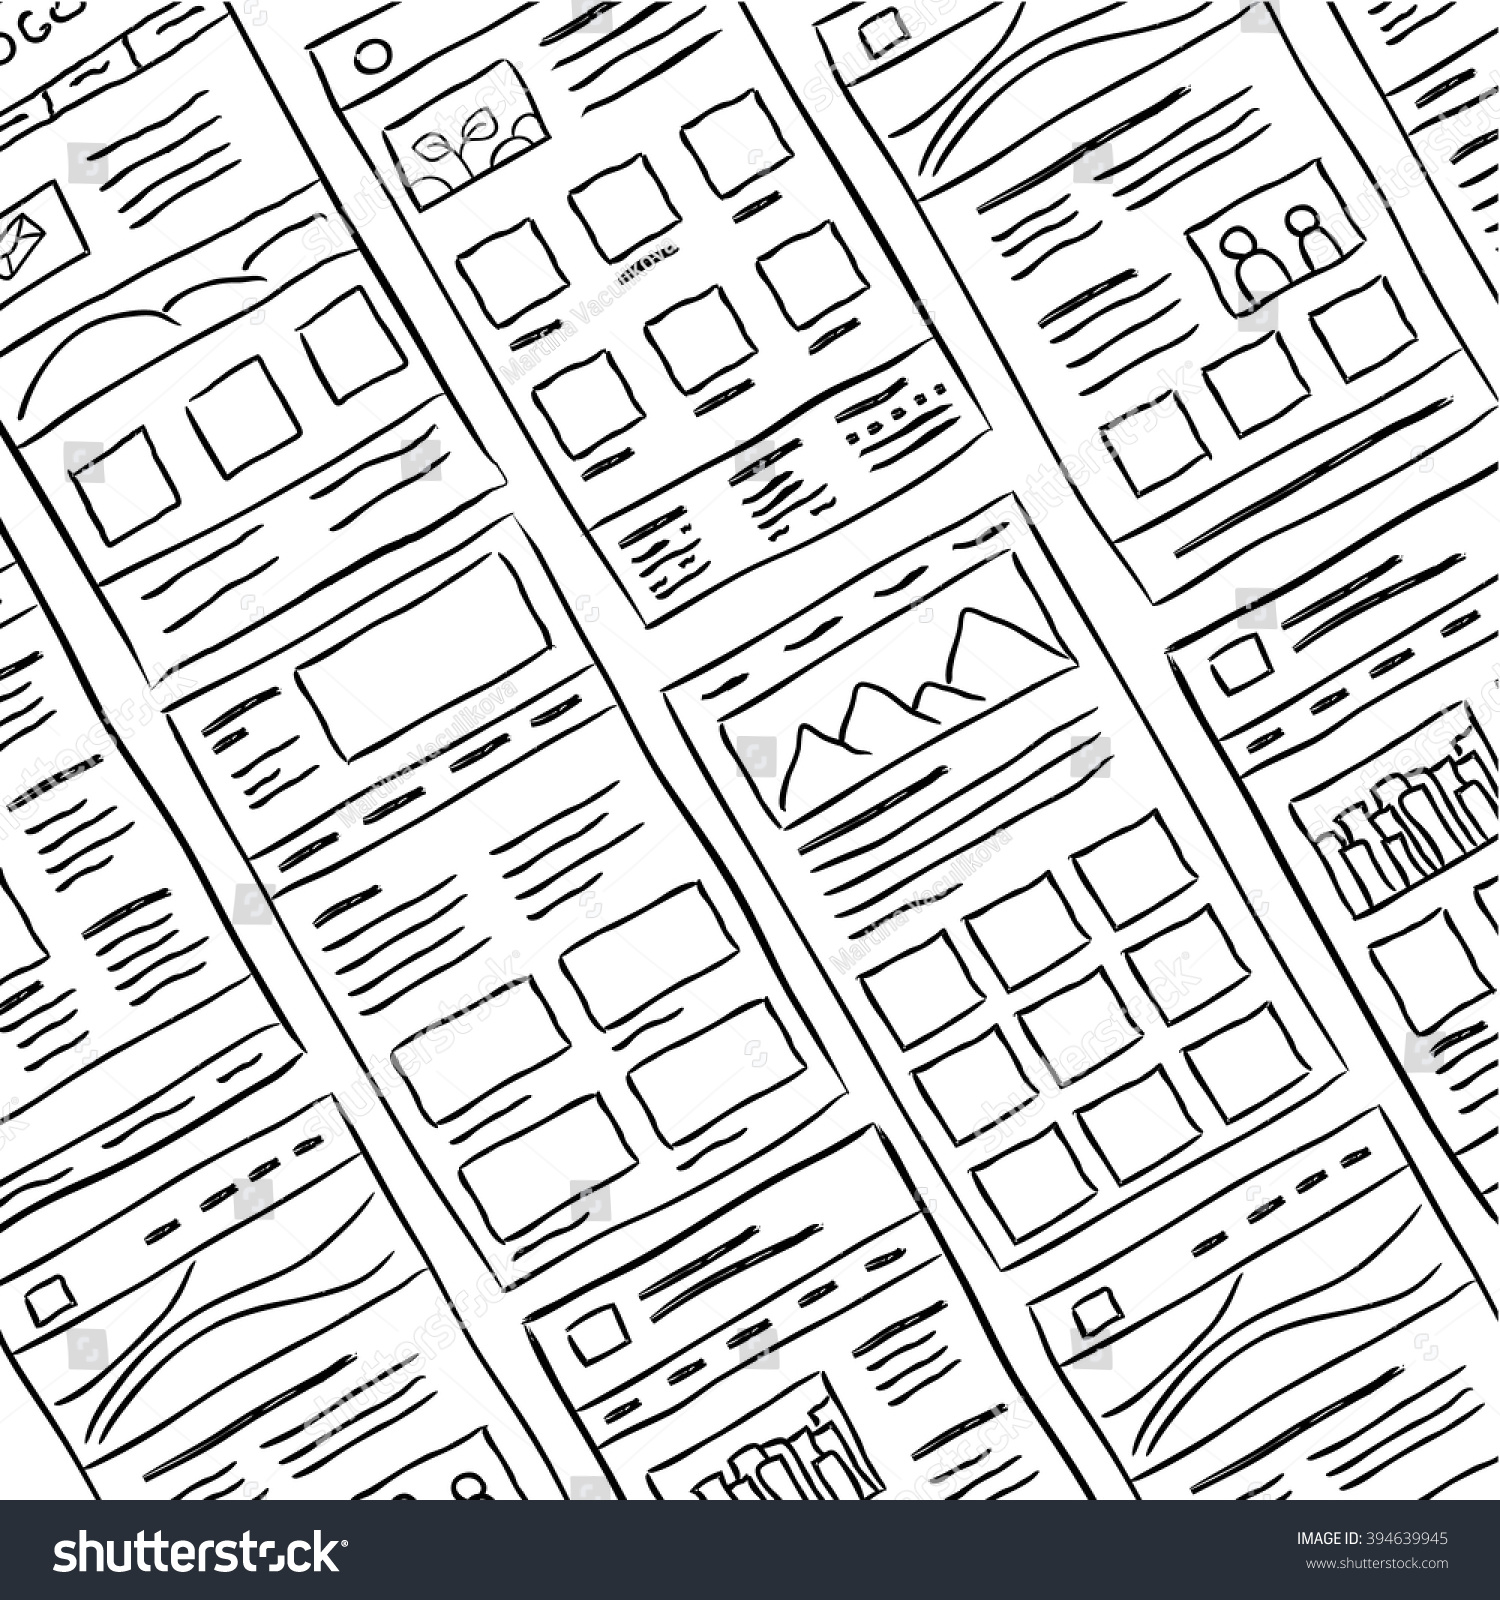 Hand Drawn Website Layouts Doodle Style Stock Vector (Royalty Free ...